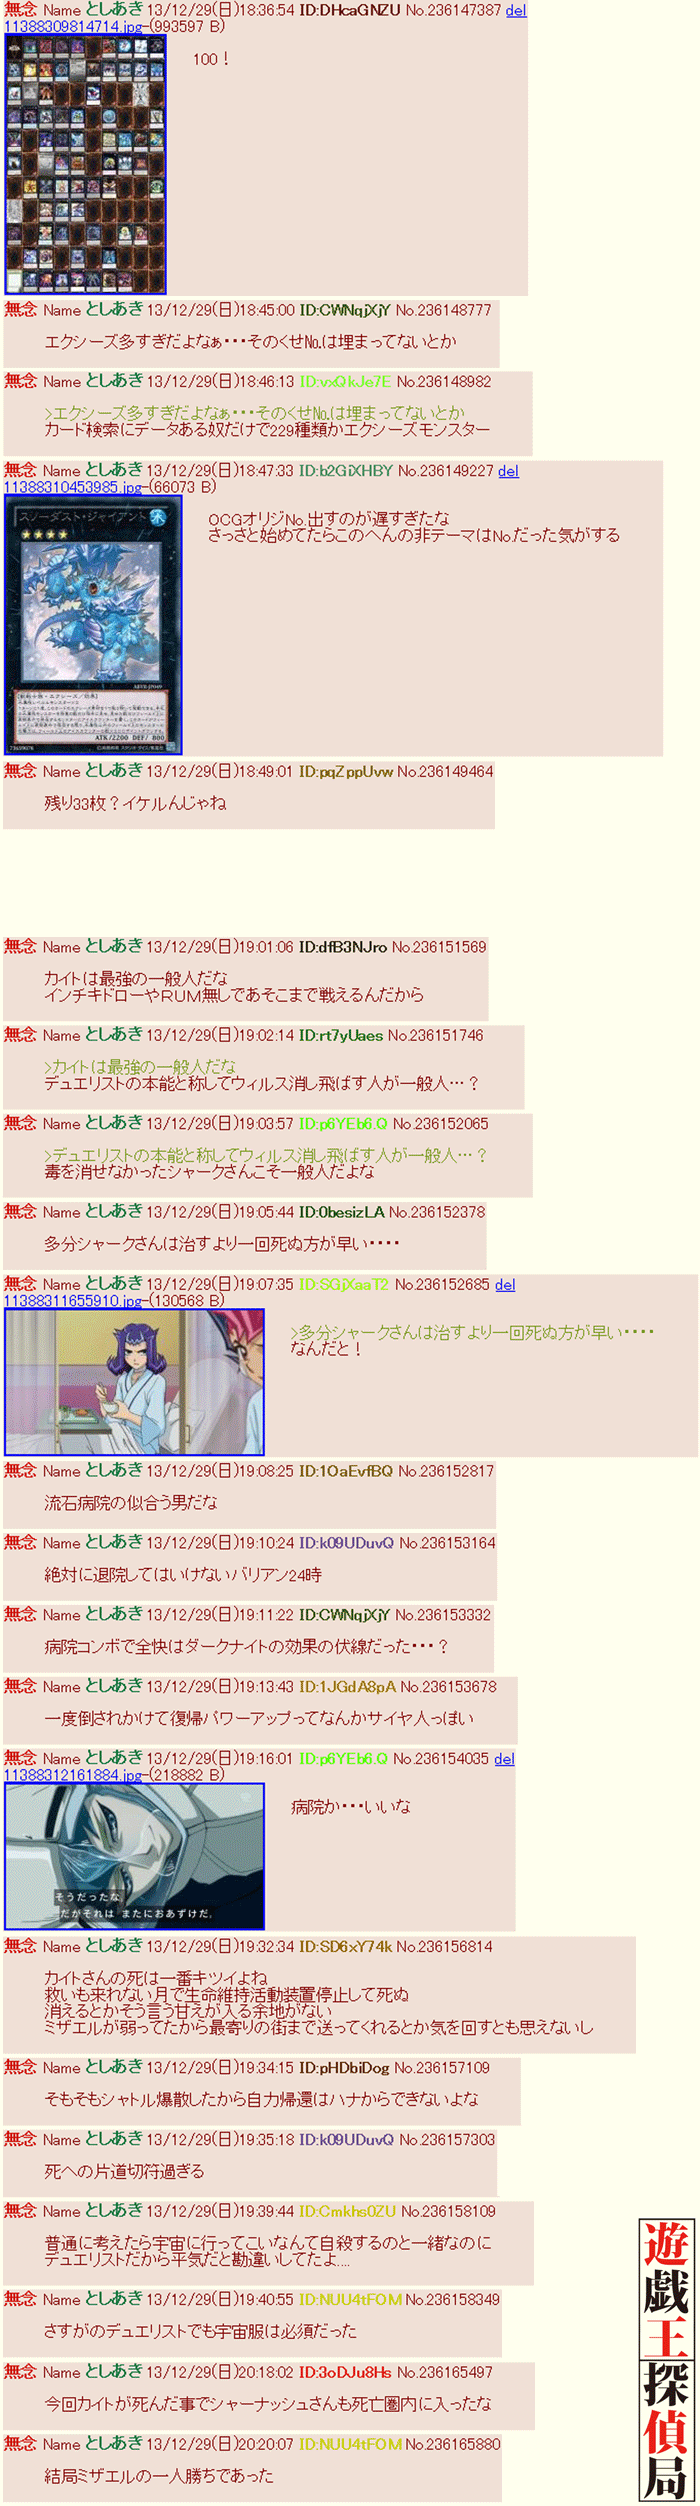 20131231002413250.png